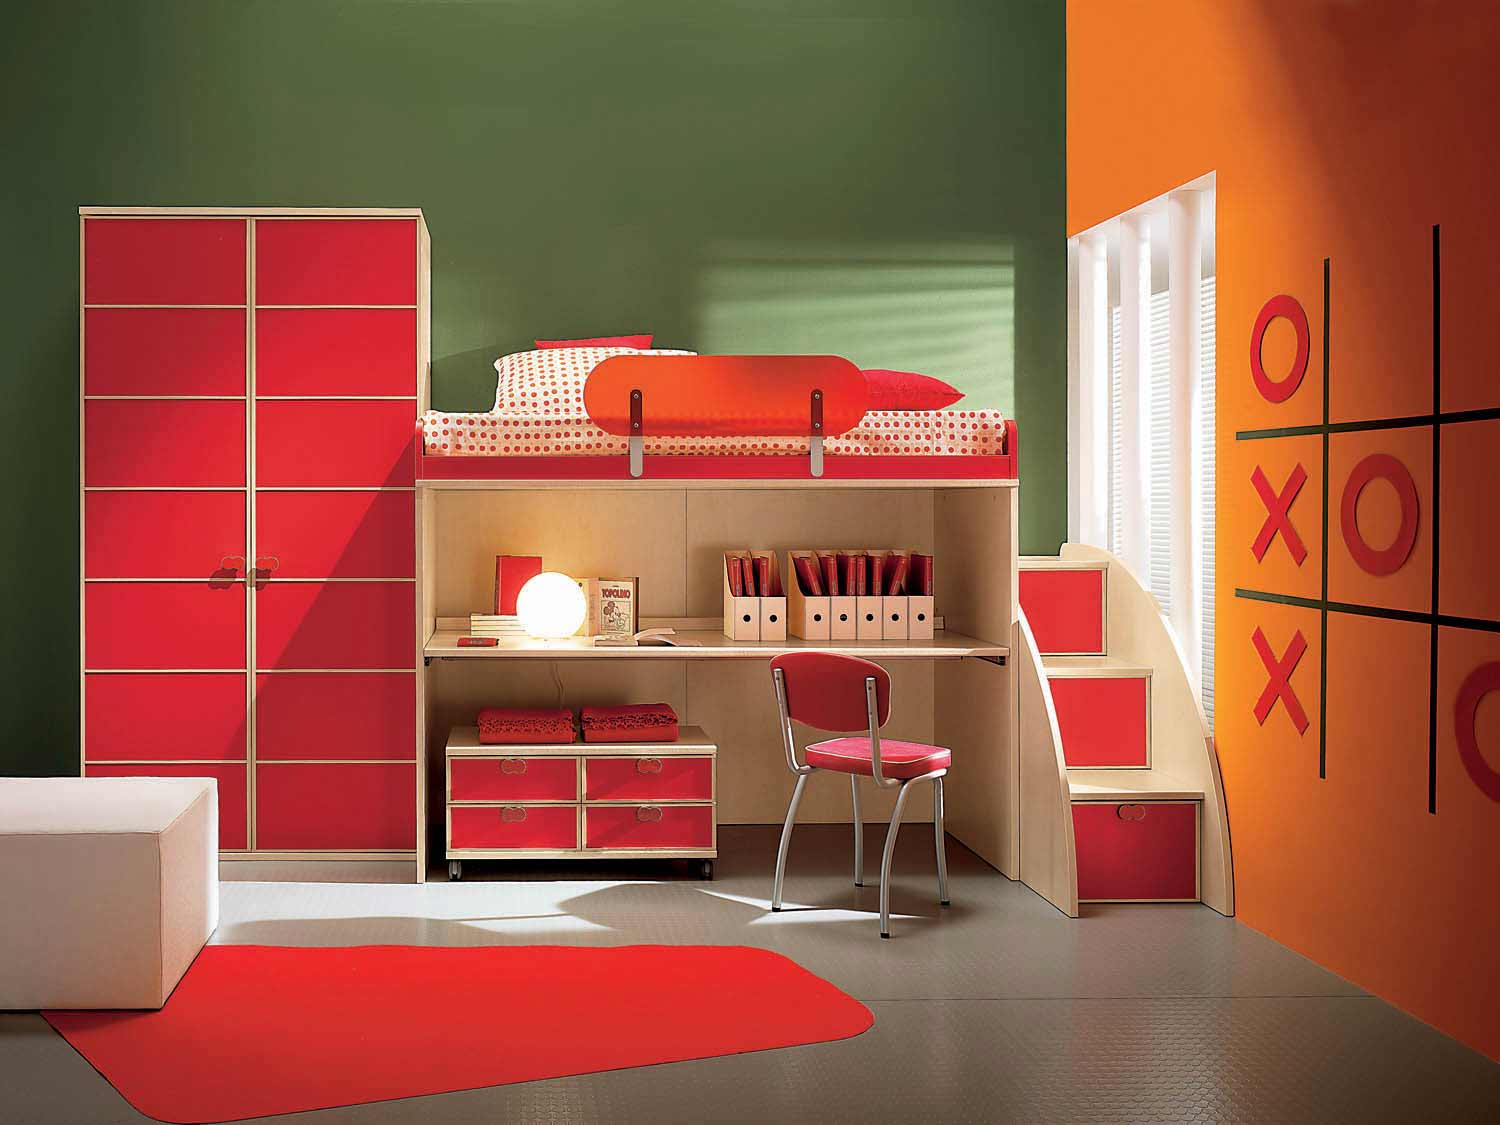 Bunk Bed Ideas For Small Rooms Thoughtskoto